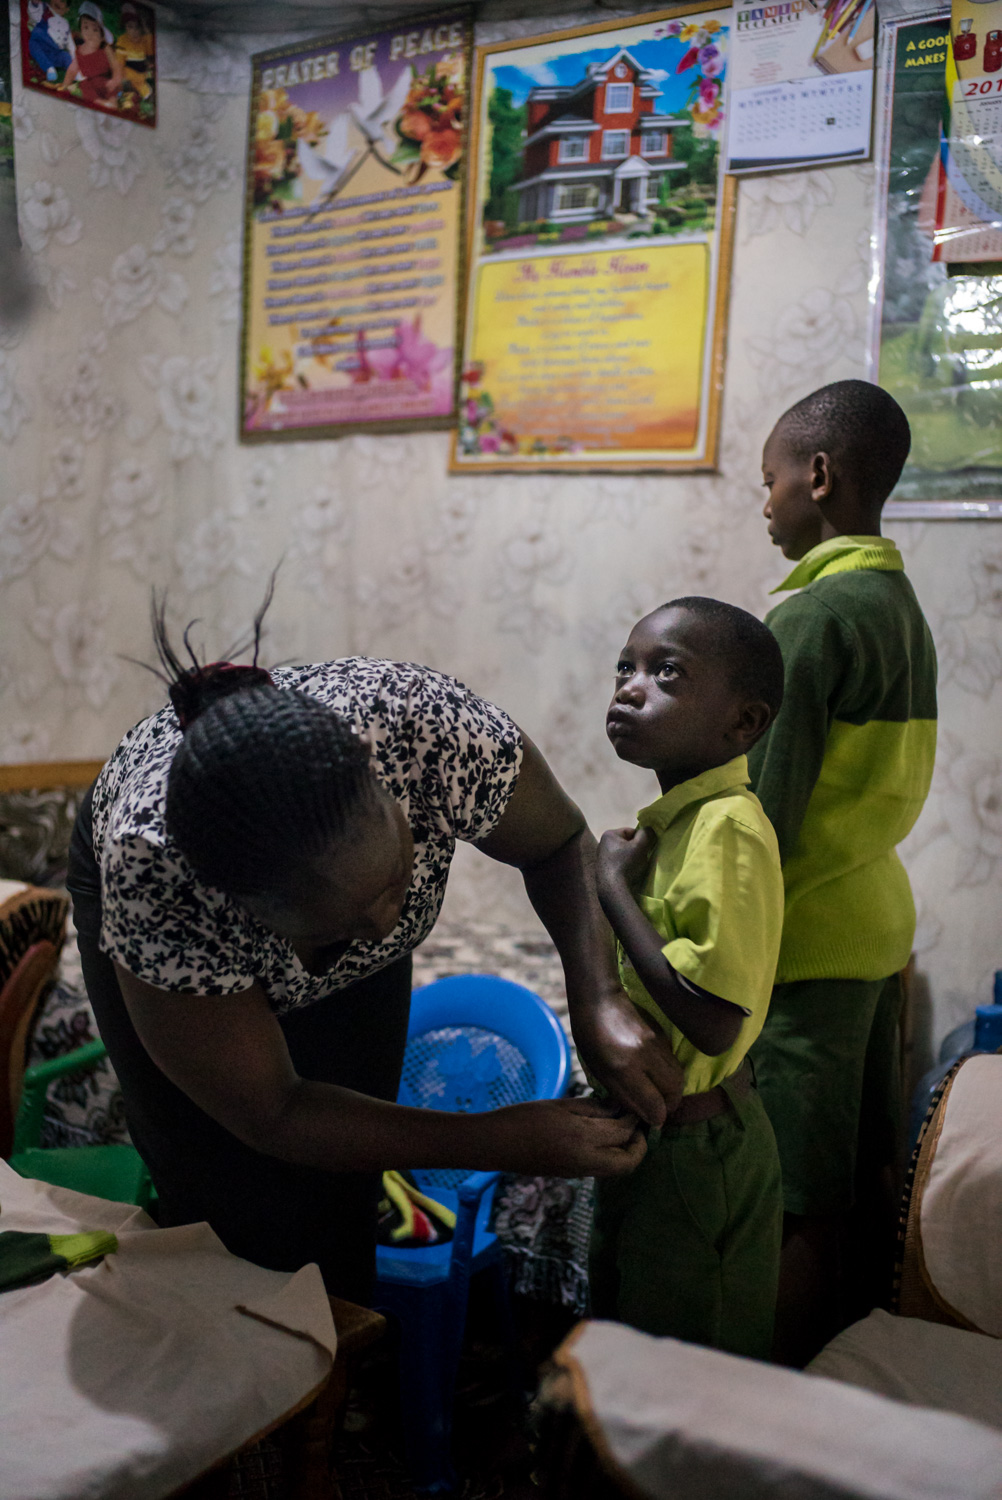 Elizabeth Mumo prepares her sons Samuel, 6, and Joshua, 12, for another schoolday at Bridge. She and her husband save to pay school fees for her two sons to attend Bridge, believing that since the school is run by white westerners, her children are getting the same kind of education as the children of expats and diplomats-- an international education that she hopes may one day land her children at Oxford University. September 20, 2016. Nairobi, Kenya.